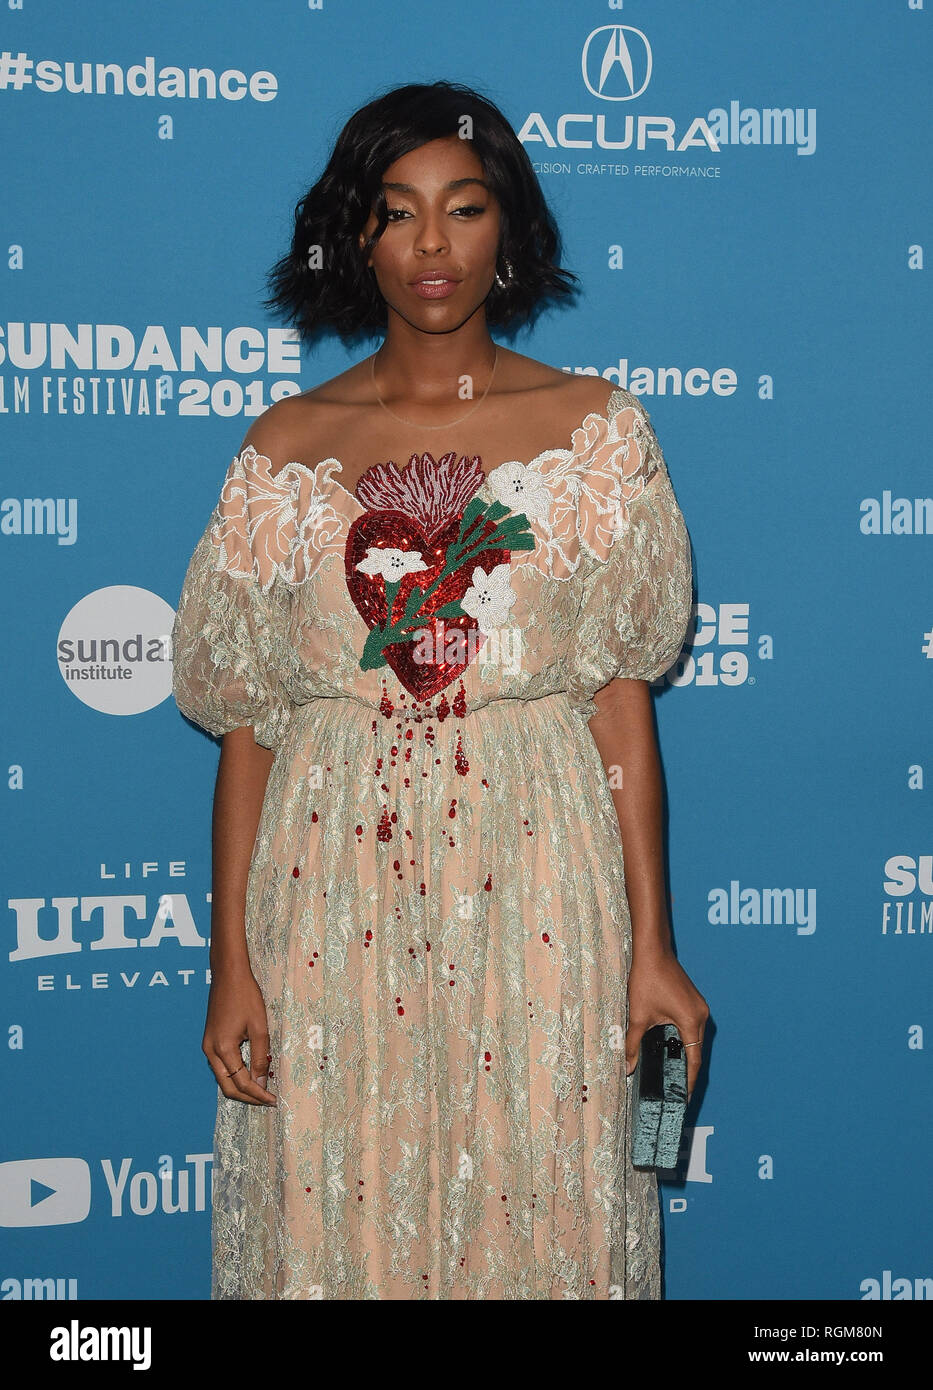 Park City Utah Usa 29th January 2019 Jessica Williams Attends The Corporate Animals Premiere During The 2019 Sundance Film Festival At Eccles Center Theatre On January 29 2019 In Park City Utah